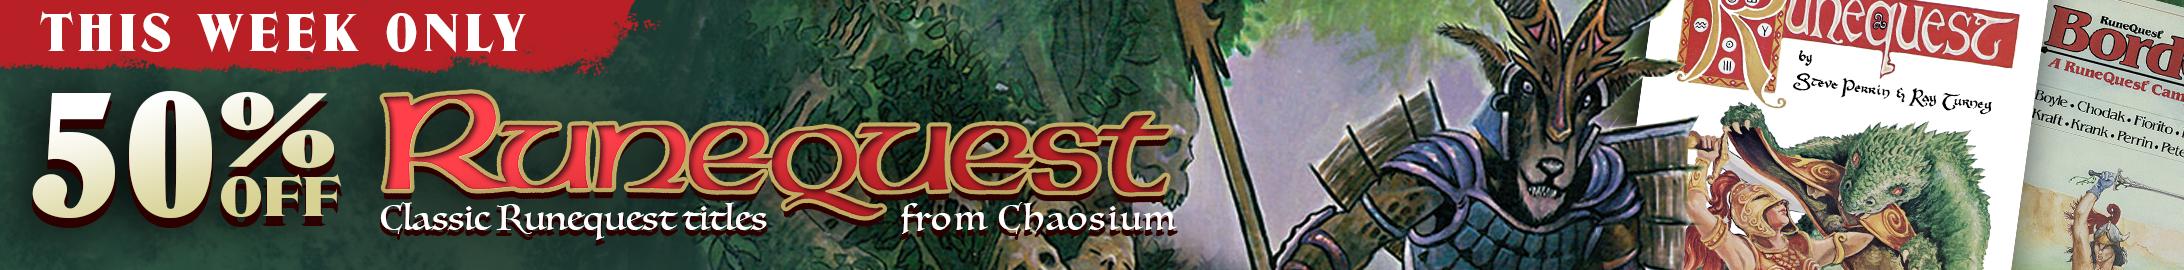 This week only: 50% off all Classic Runequest titles @ DriveThruRPG.com